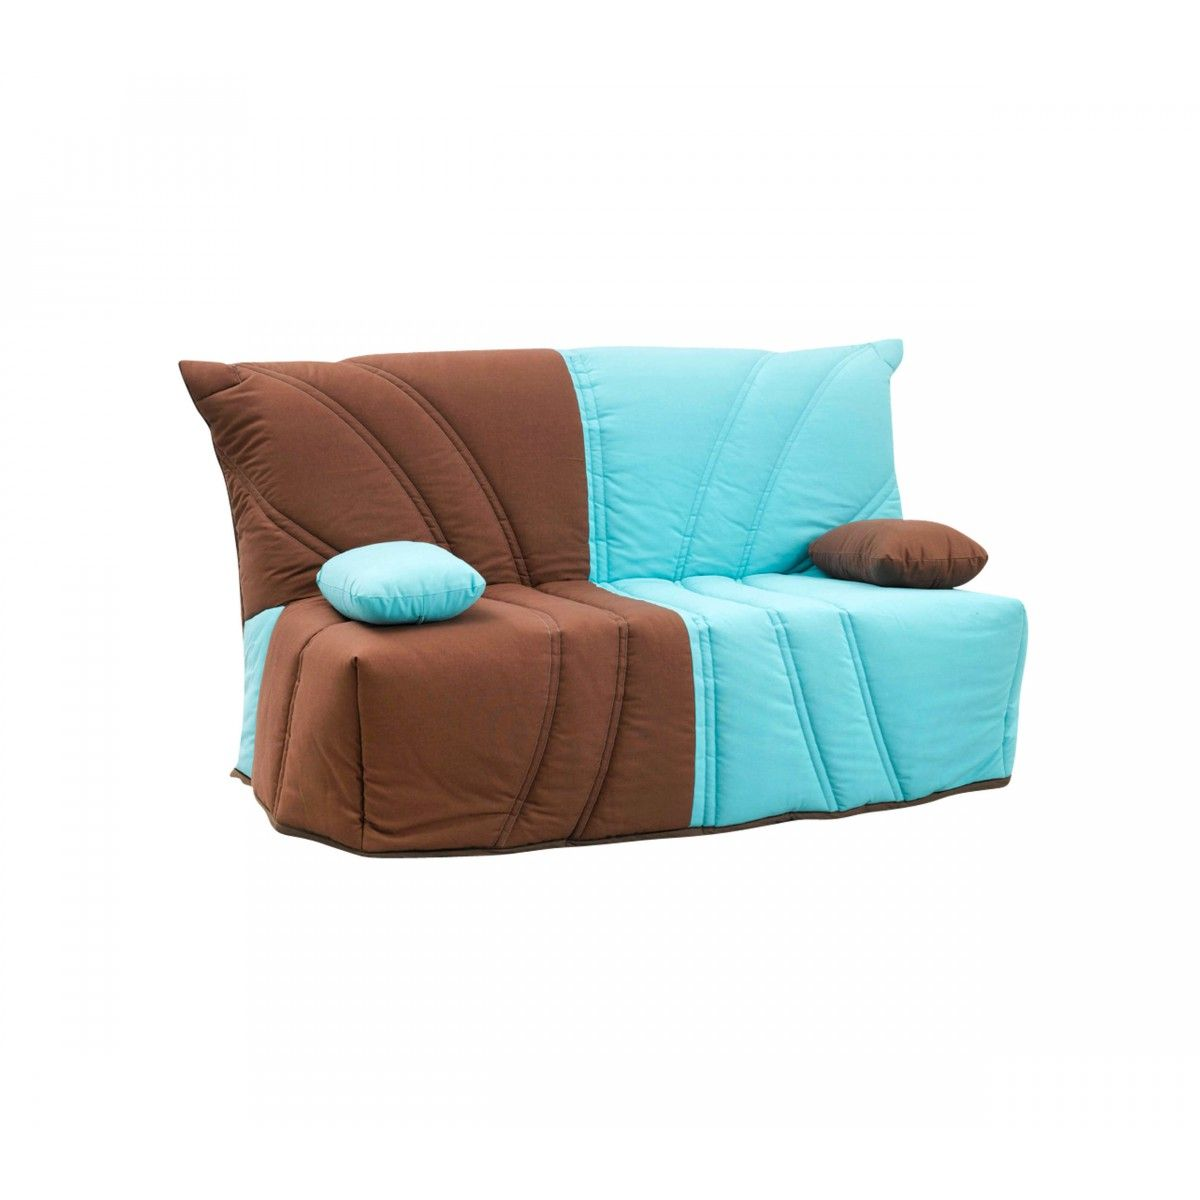 Housse de clic clac matelassee topiwall for Housse de chaise la redoute